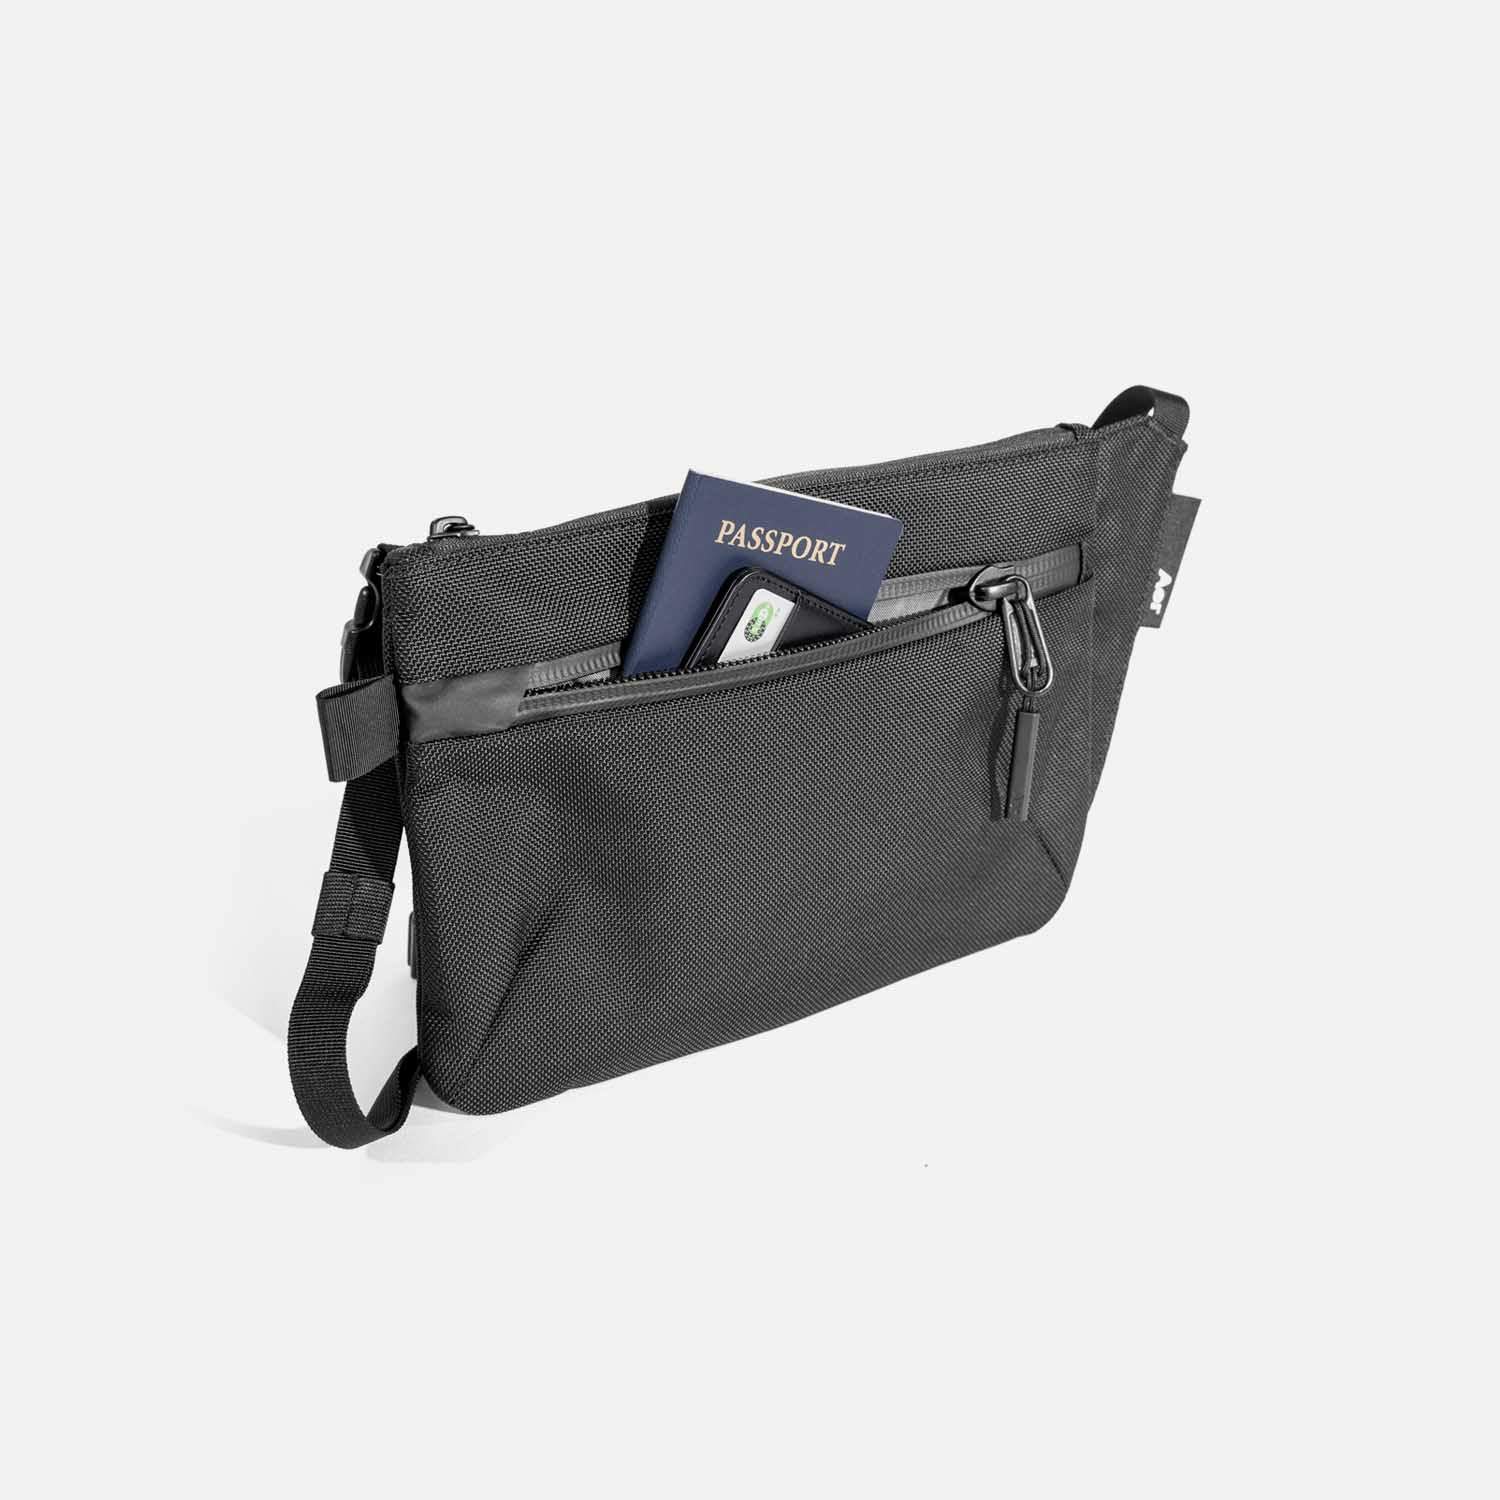 21019_slingpouch_black_quickaccess.jpg